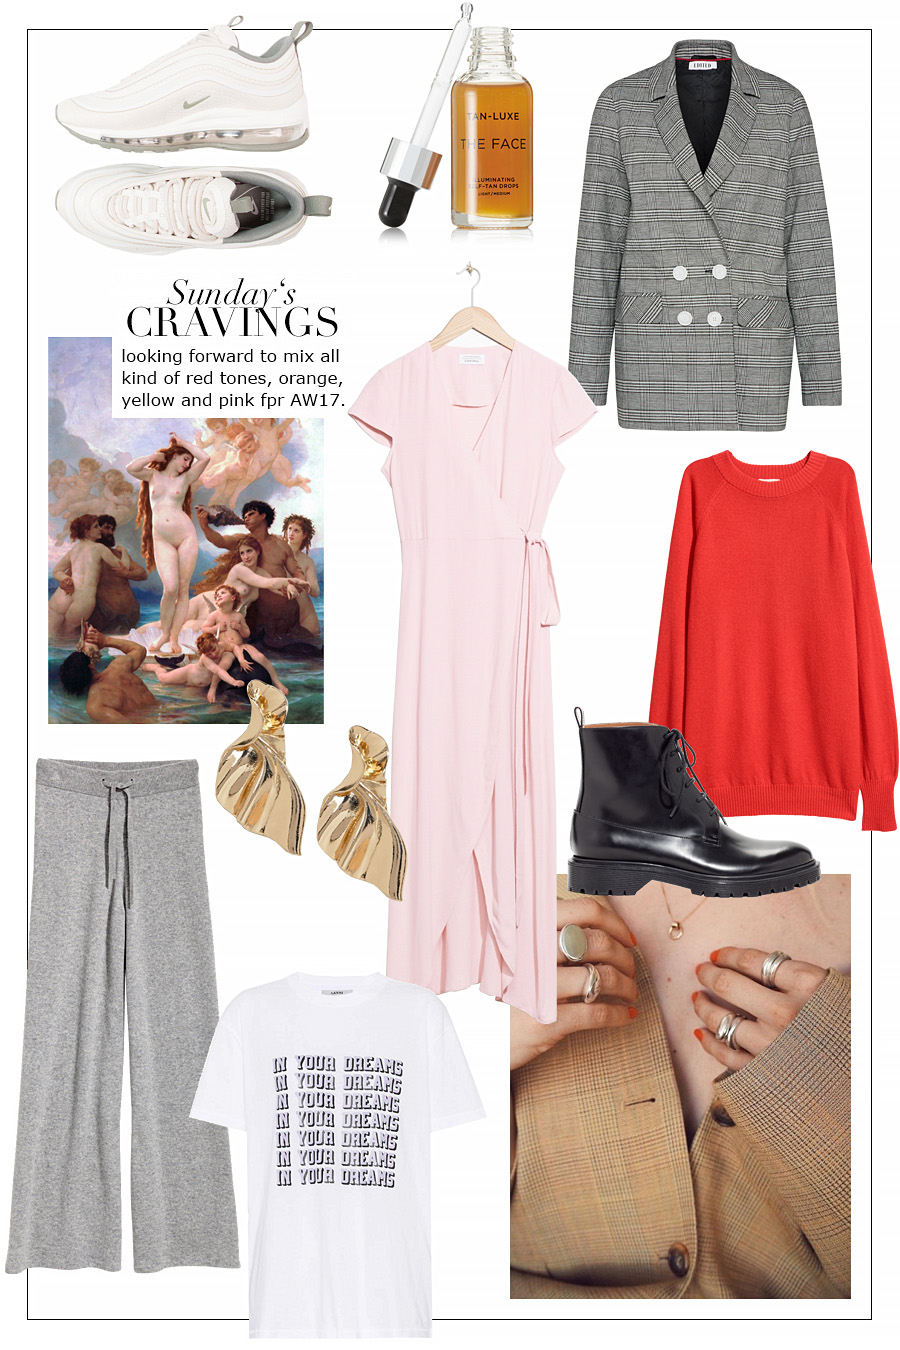 Air Max 97 sneakers – Nike. Face Illuminating Self-Tan Drops – Tan-Luxe. Checked blazer – Edited the Label. Wrap dress – & other Stories. Cashmere jumper – H&M. Gold earrings – Asos. Lace-up leather boots – & Other Stories. Cashmere pants – H&M. Printed t-shirt – Ganni.